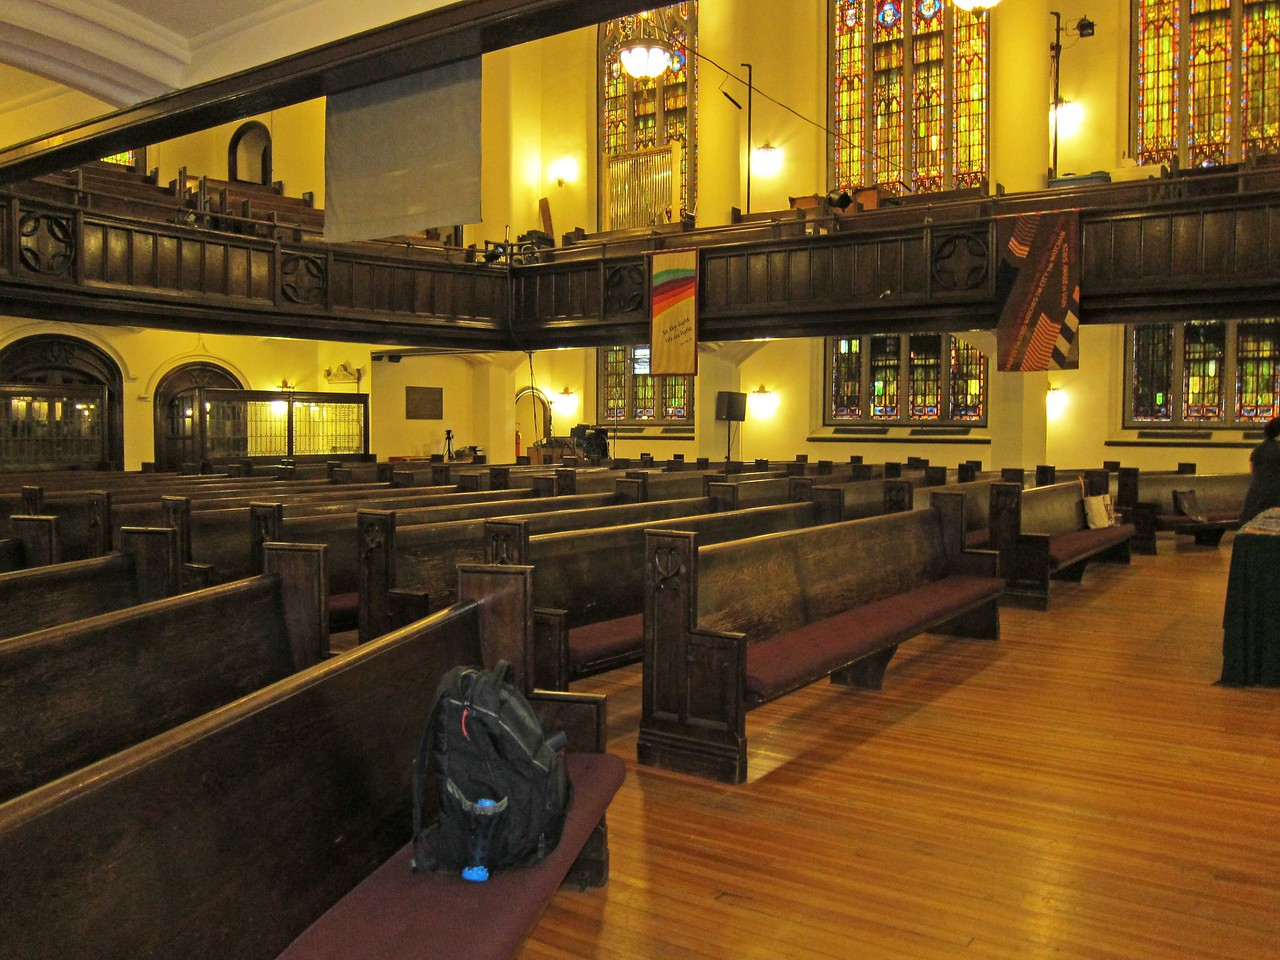 Broadway Presbyterian Church_2013-10-04_4328_Sanctuary seating seen from far stage left